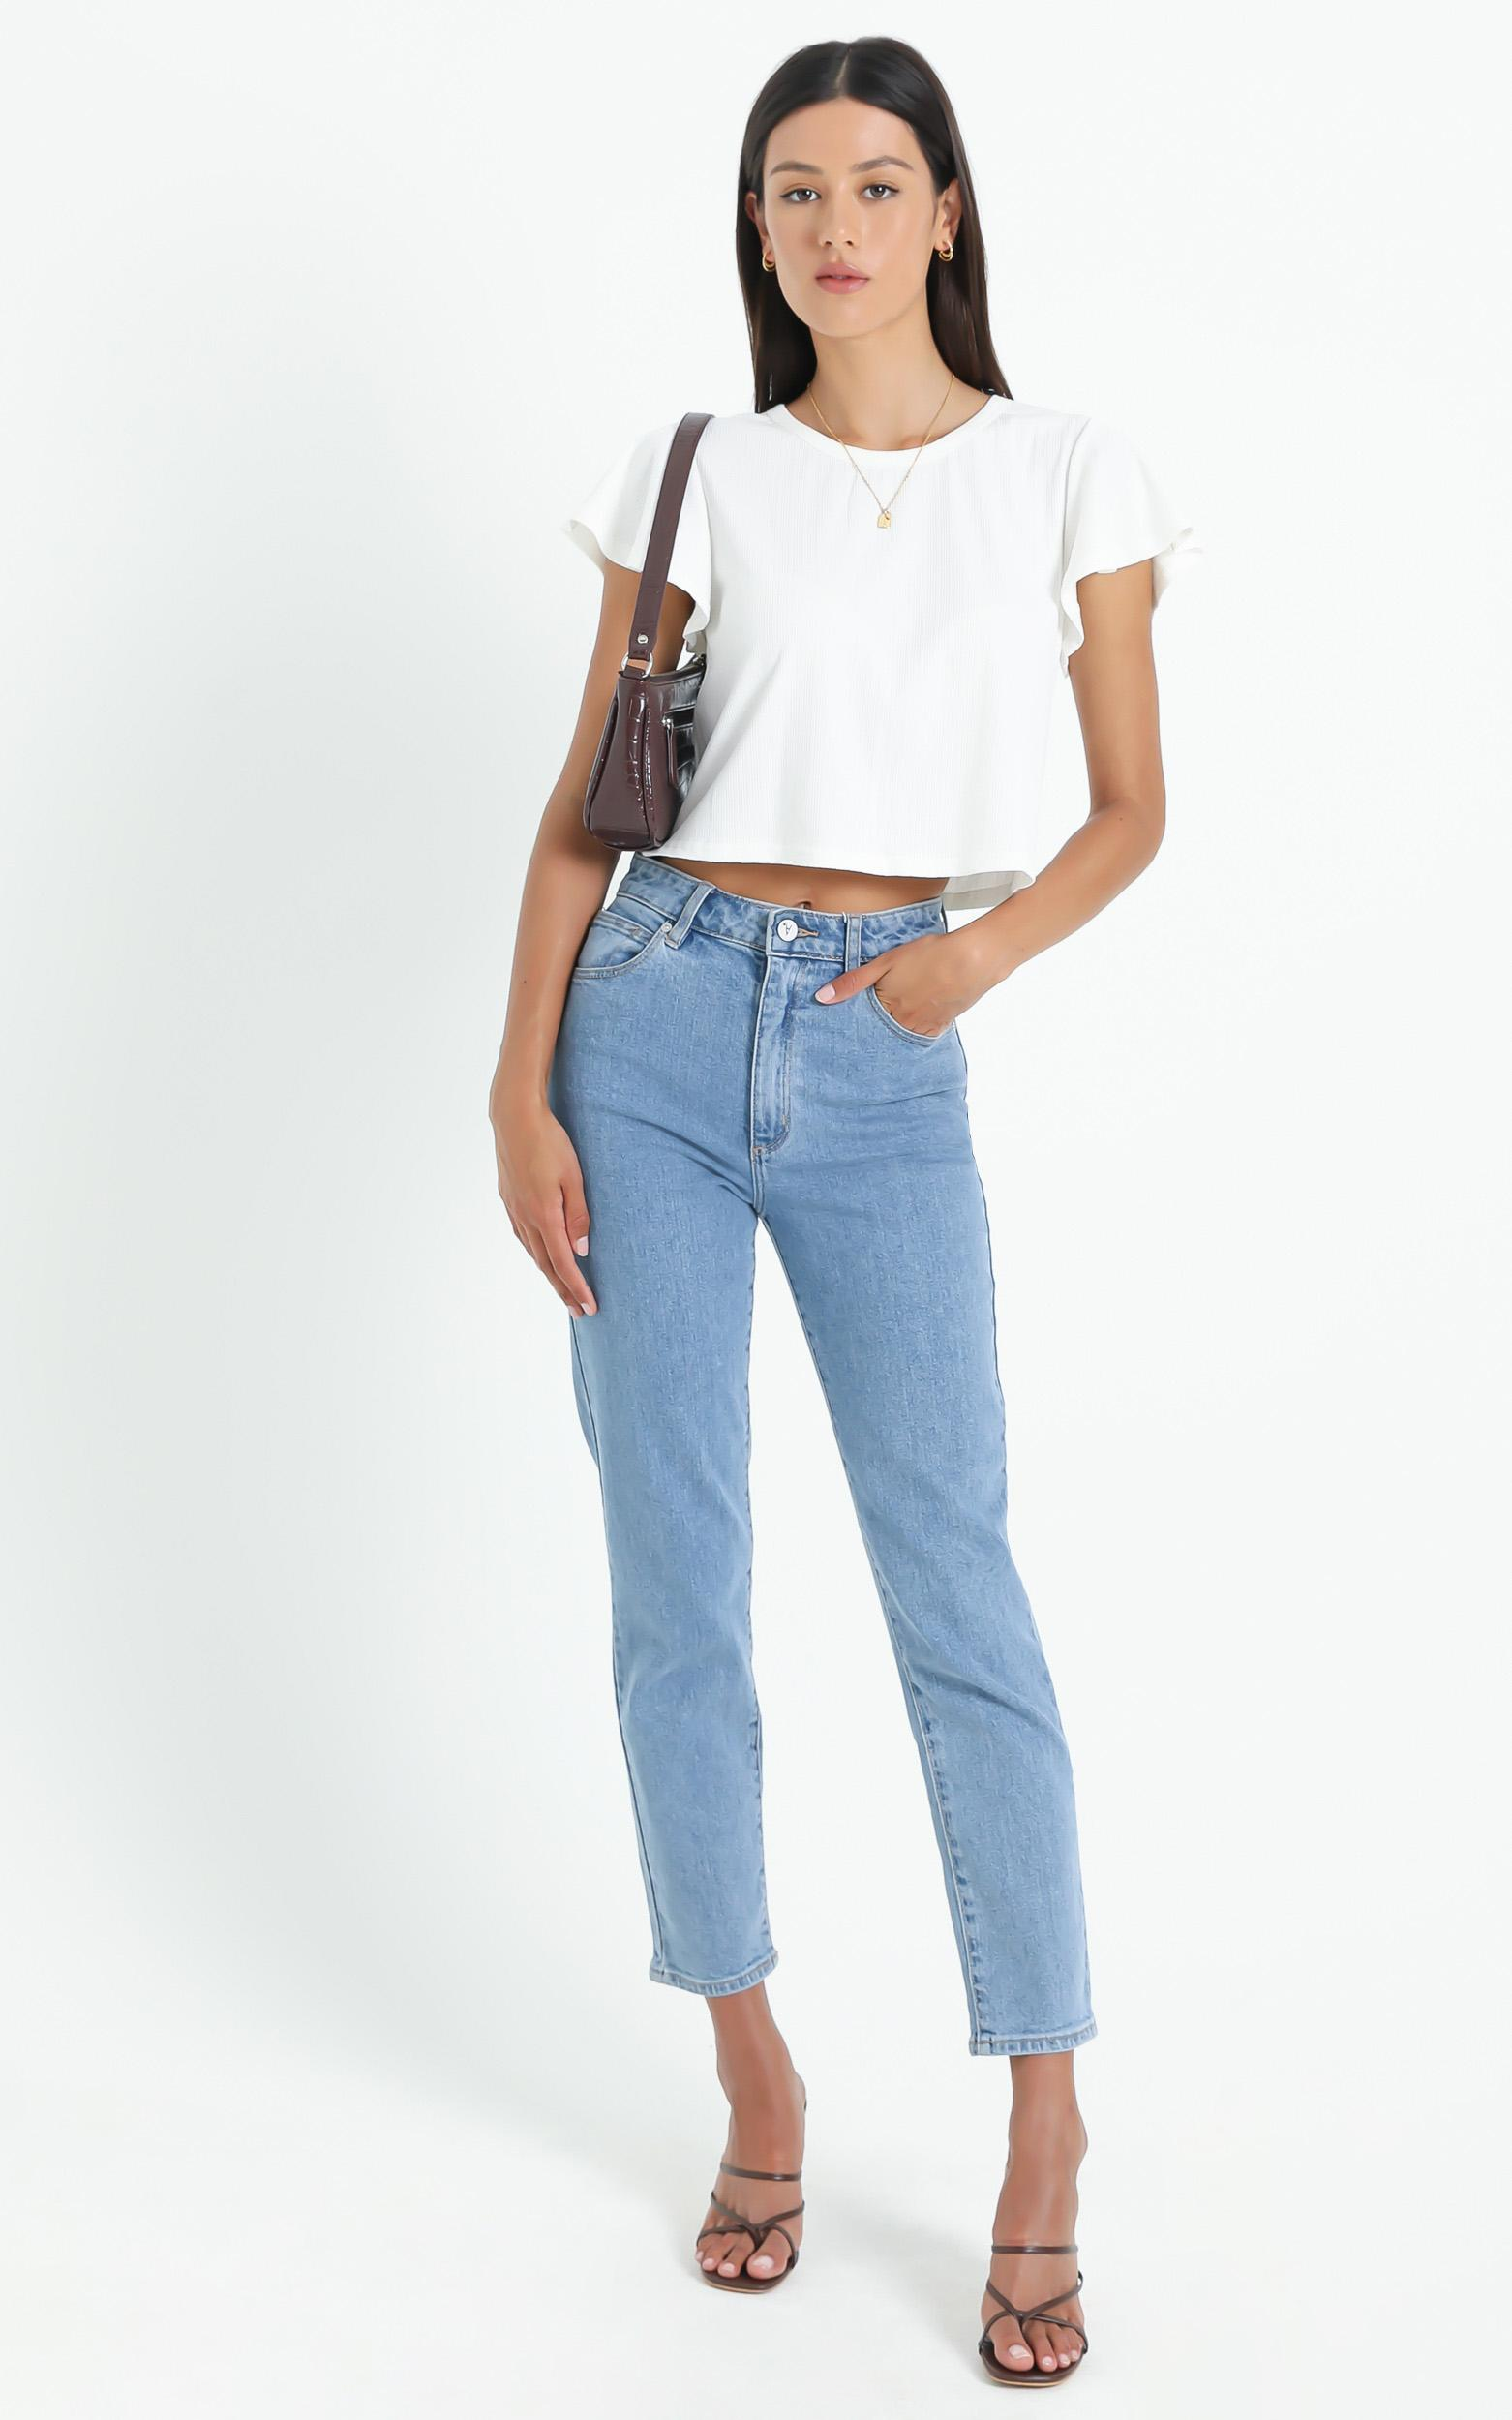 Broome Top in White - 6 (XS), White, hi-res image number null